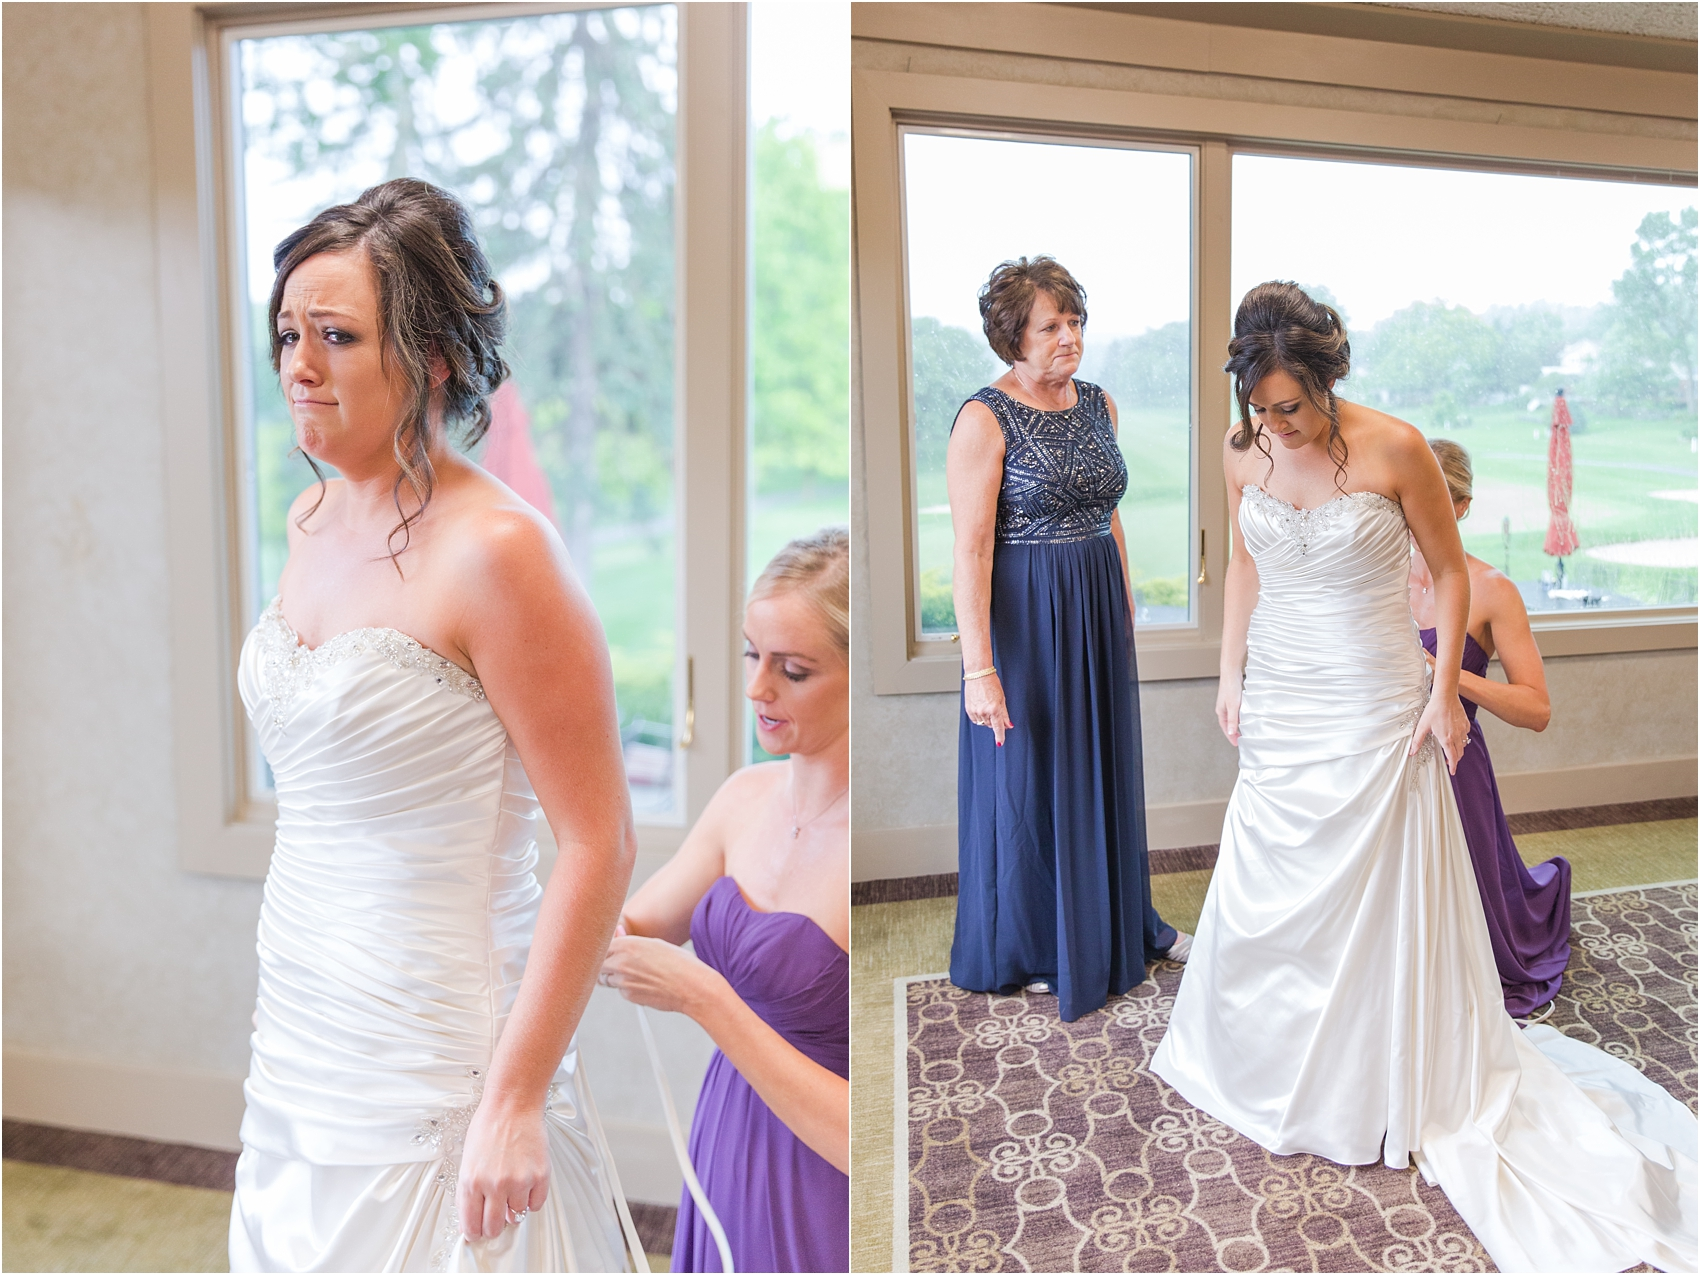 classic-wedding-photos-at-great-oaks-country-club-in-rochester-hills-mi-by-courtney-carolyn-photography_0014.jpg